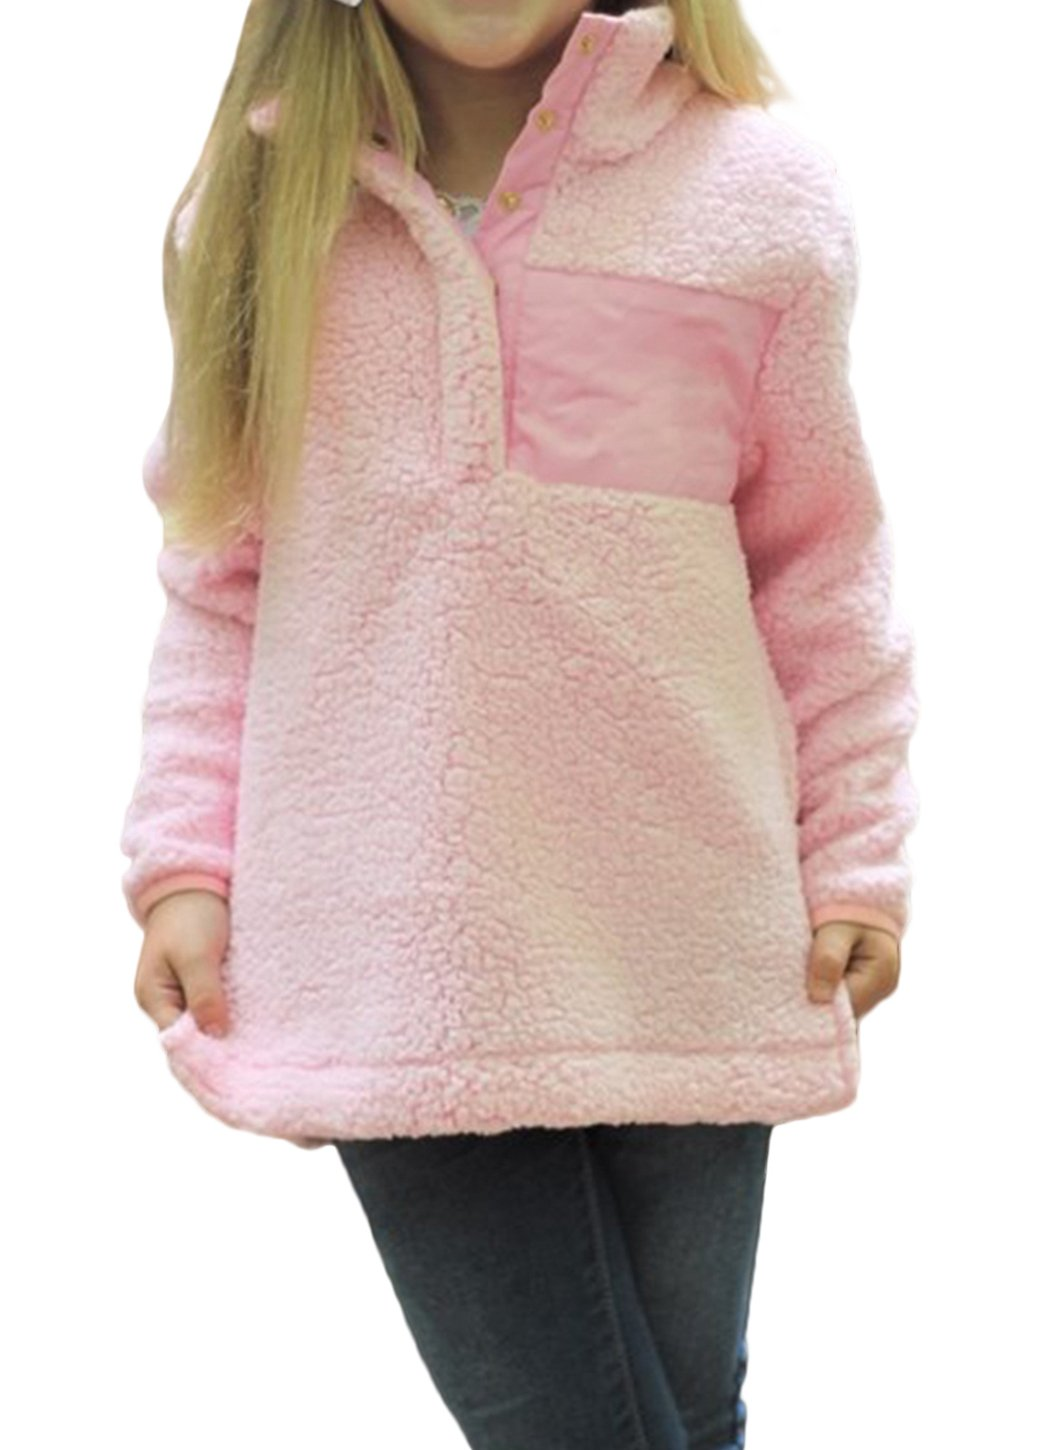 STKAT Girl's Stand Buttons Collar Pebble Pile Fleece Sherpa Pullover Winter Jacket Outwear